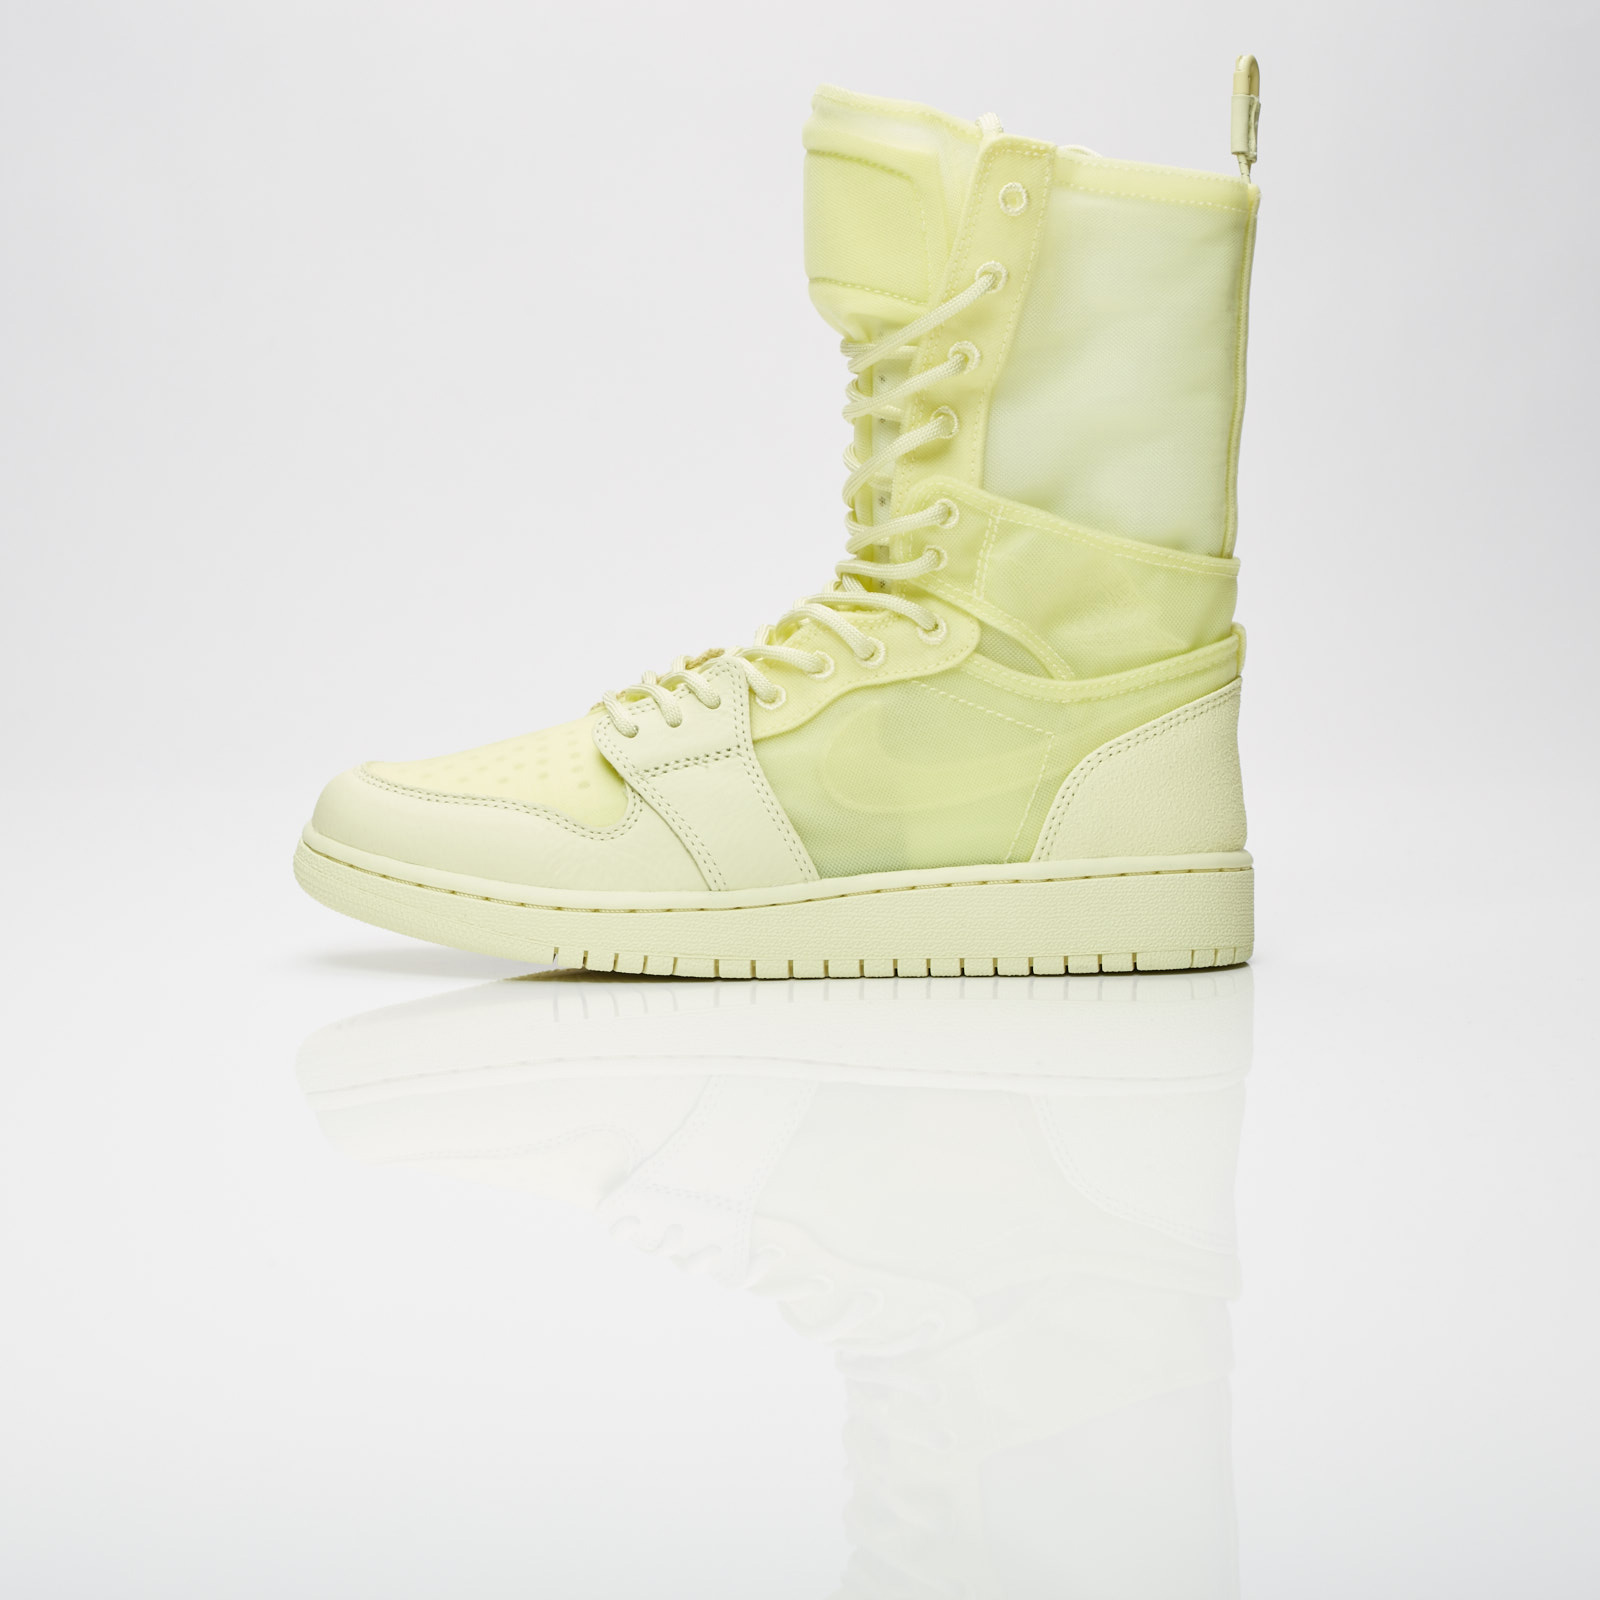 huge selection of 0e389 2d694 ... Jordan Brand Wmns Air Jordan 1 Explorer XX ...